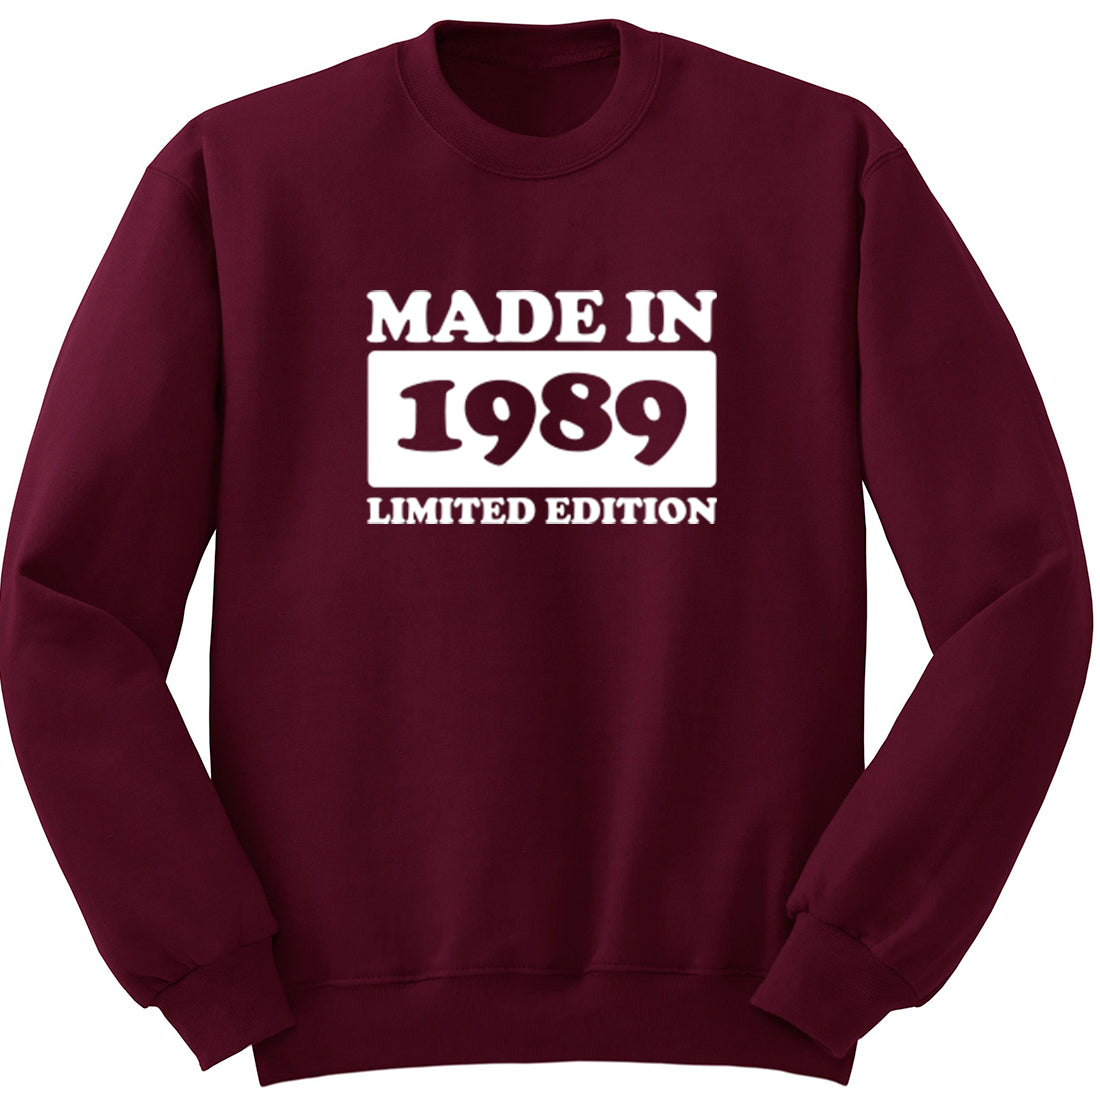 Made In 1989 Limited Edition Unisex Jumper K1946 - Illustrated Identity Ltd.